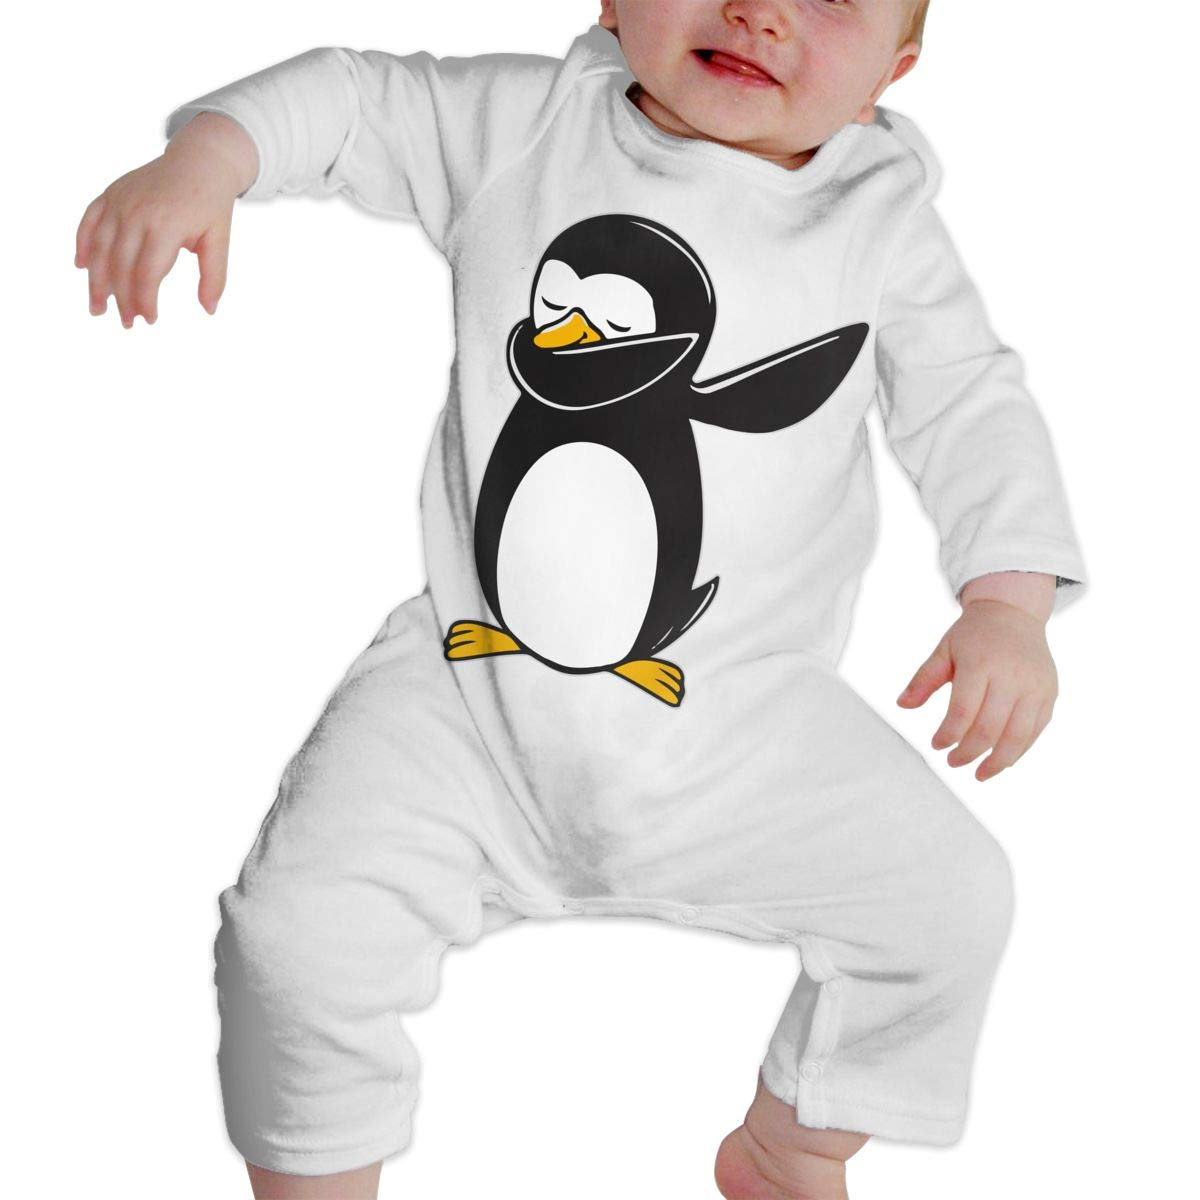 A1BY-5US Baby Infant Toddler Bodysuits Penguin Dab Cotton Long Sleeve Jumpsuit